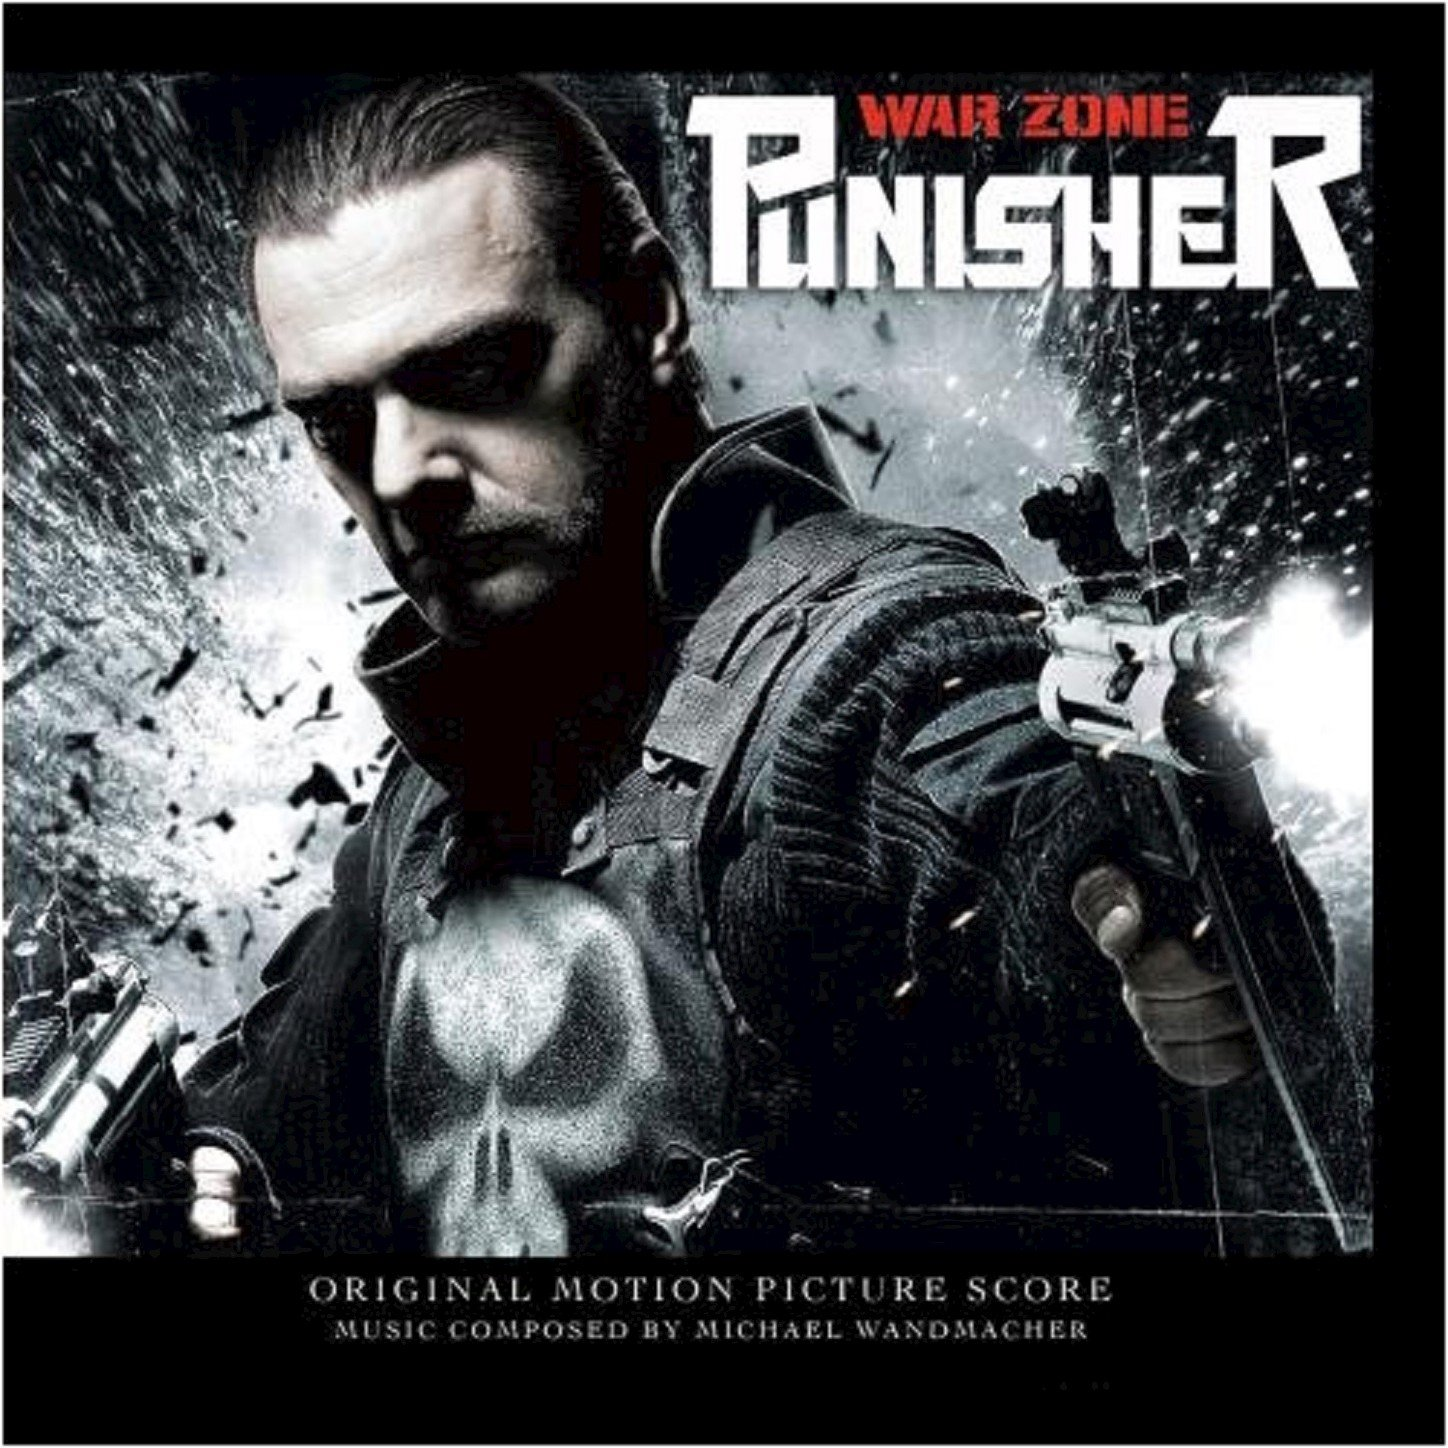 bande originale soundtrack ost score punisher zone guerre war disney marvel